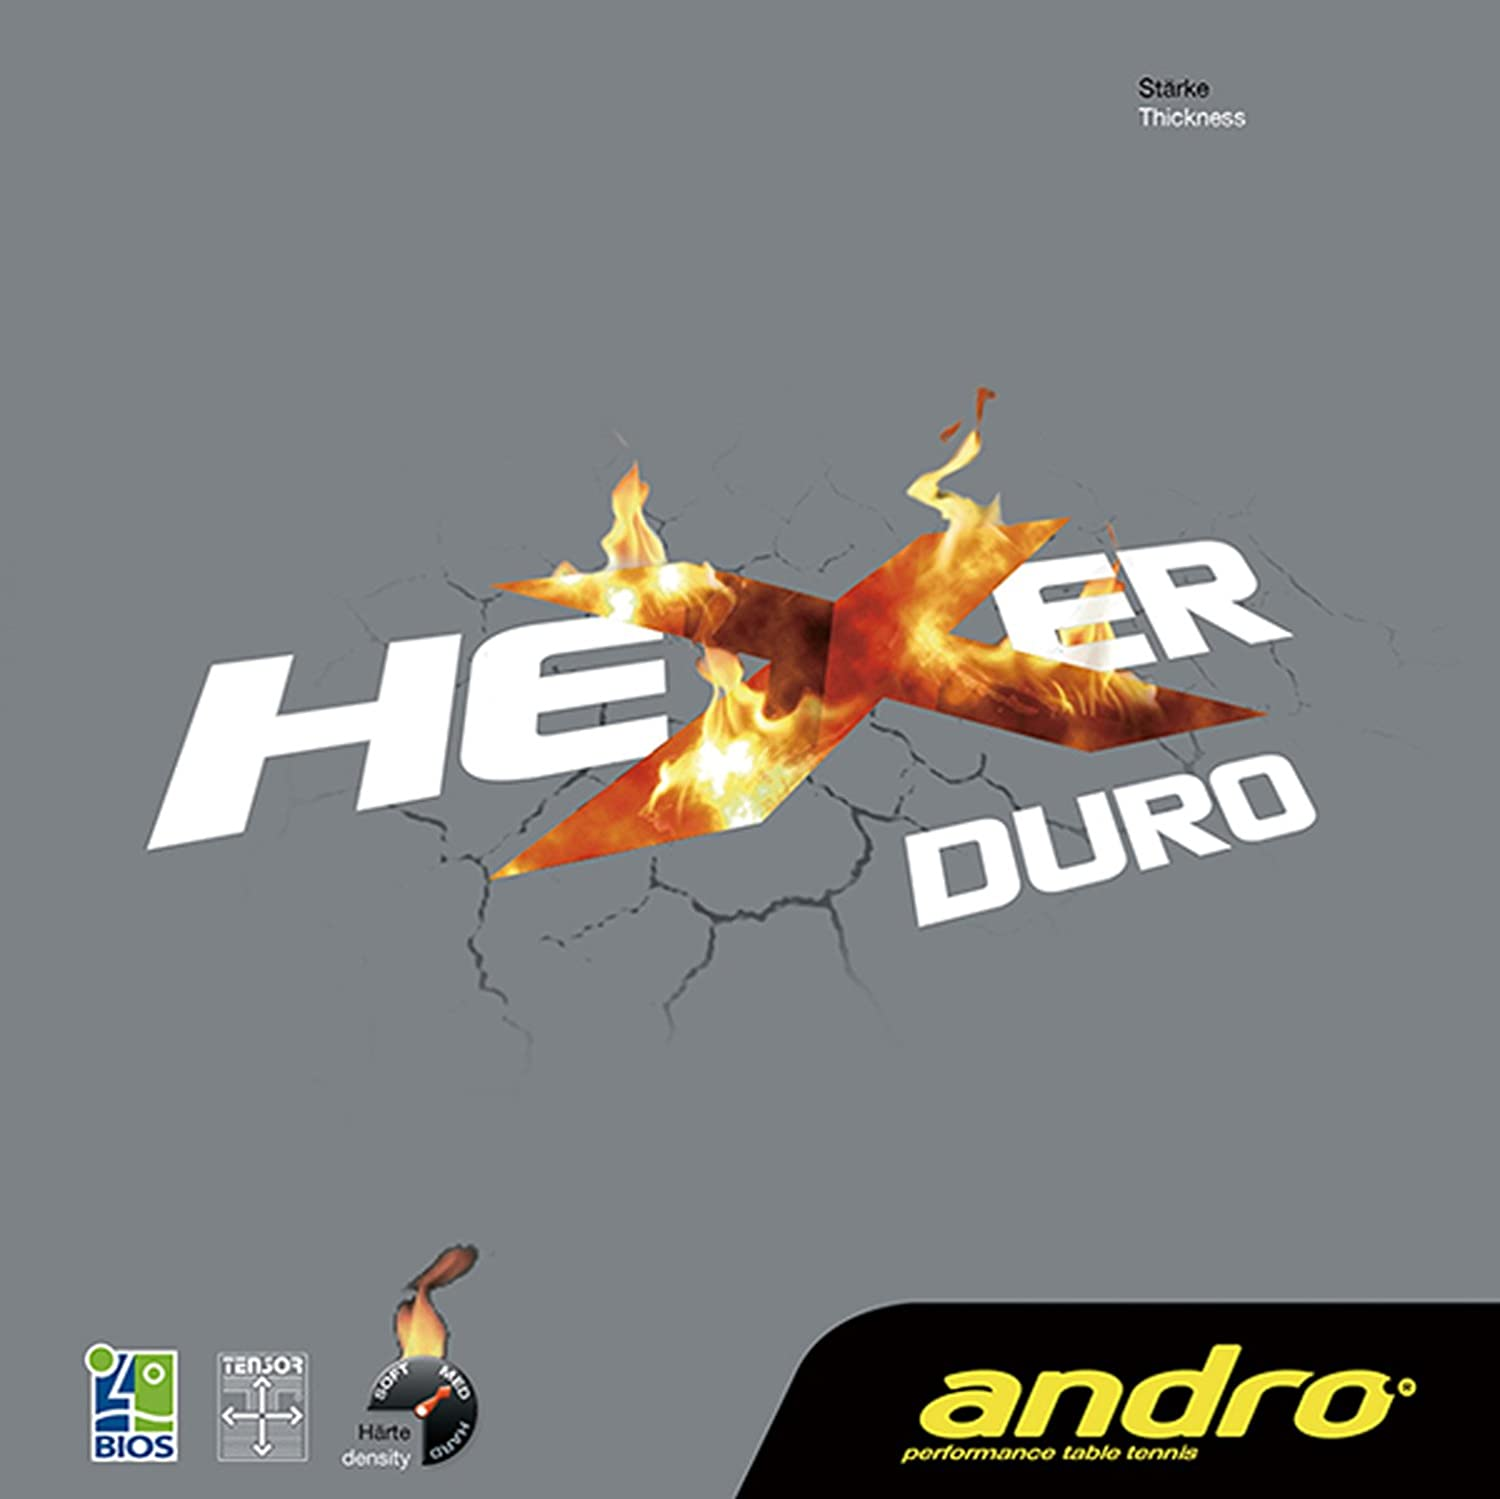 ANDRO Hexer Duro 2.1 N